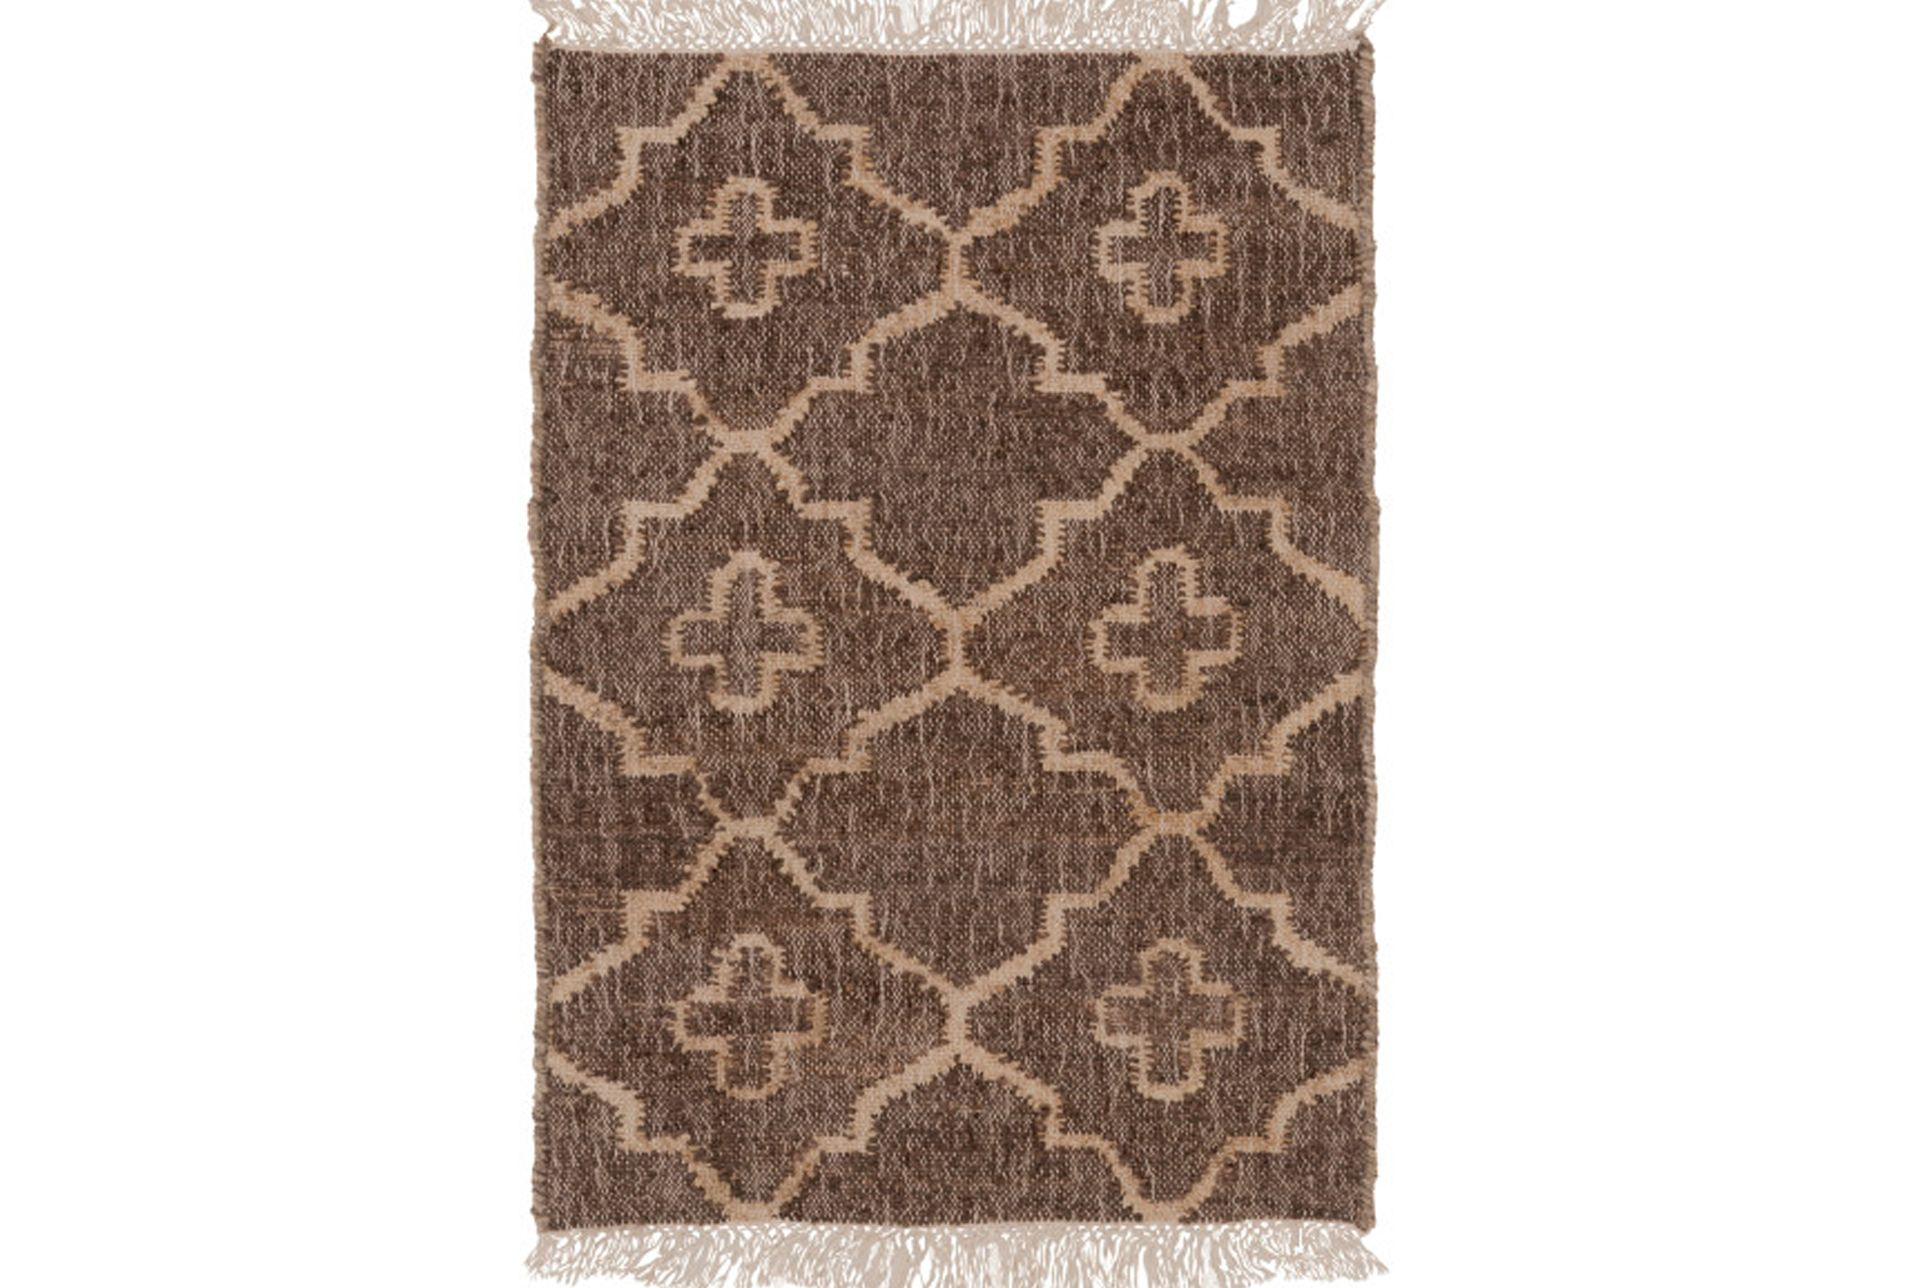 96x120 Rug Clave Chocolate Natural Fiber Area Rug Rugs Area Rugs